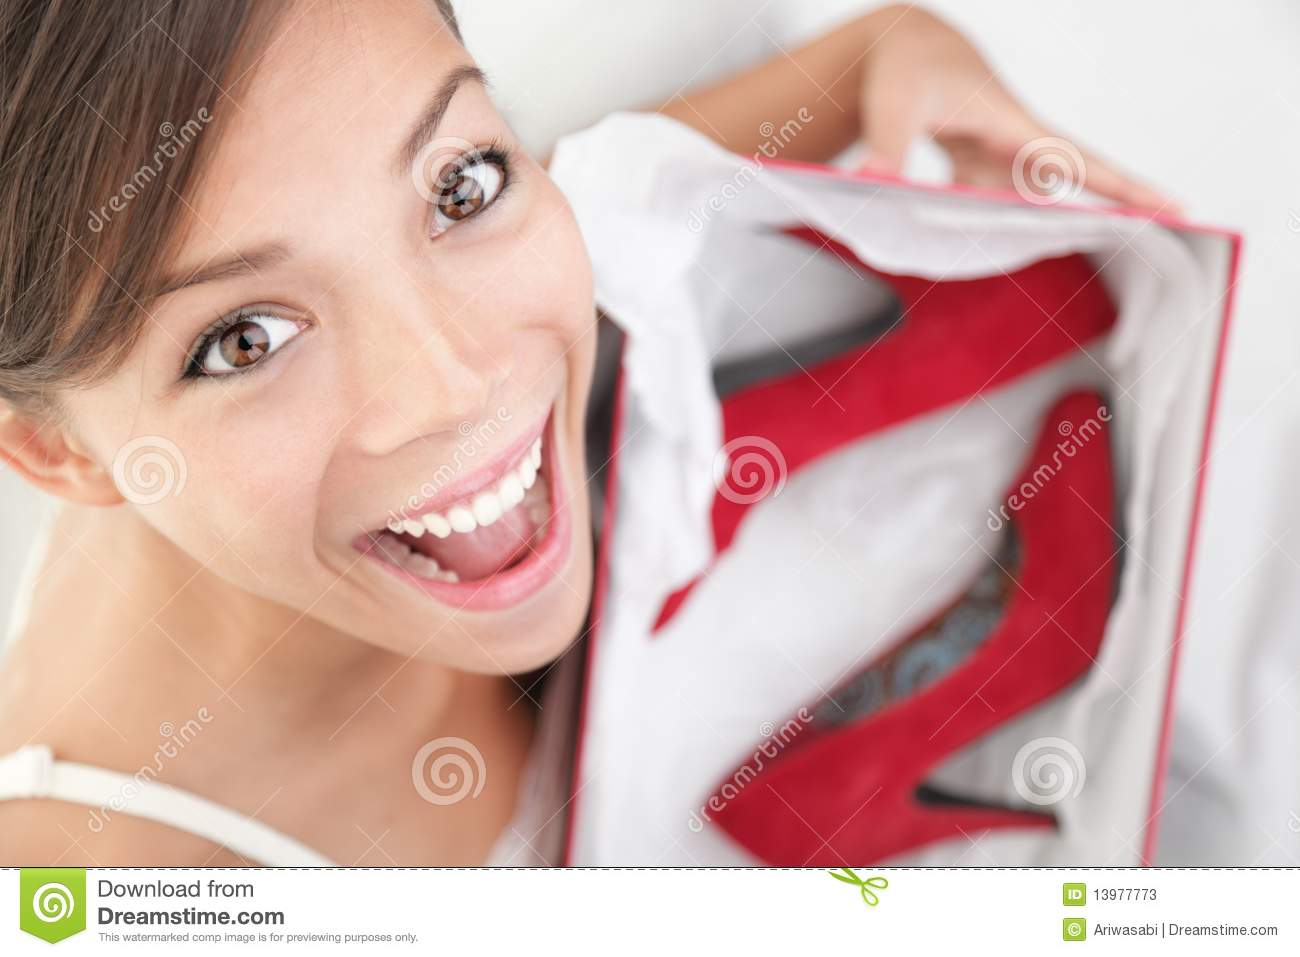 Woman happy for shoes as gift